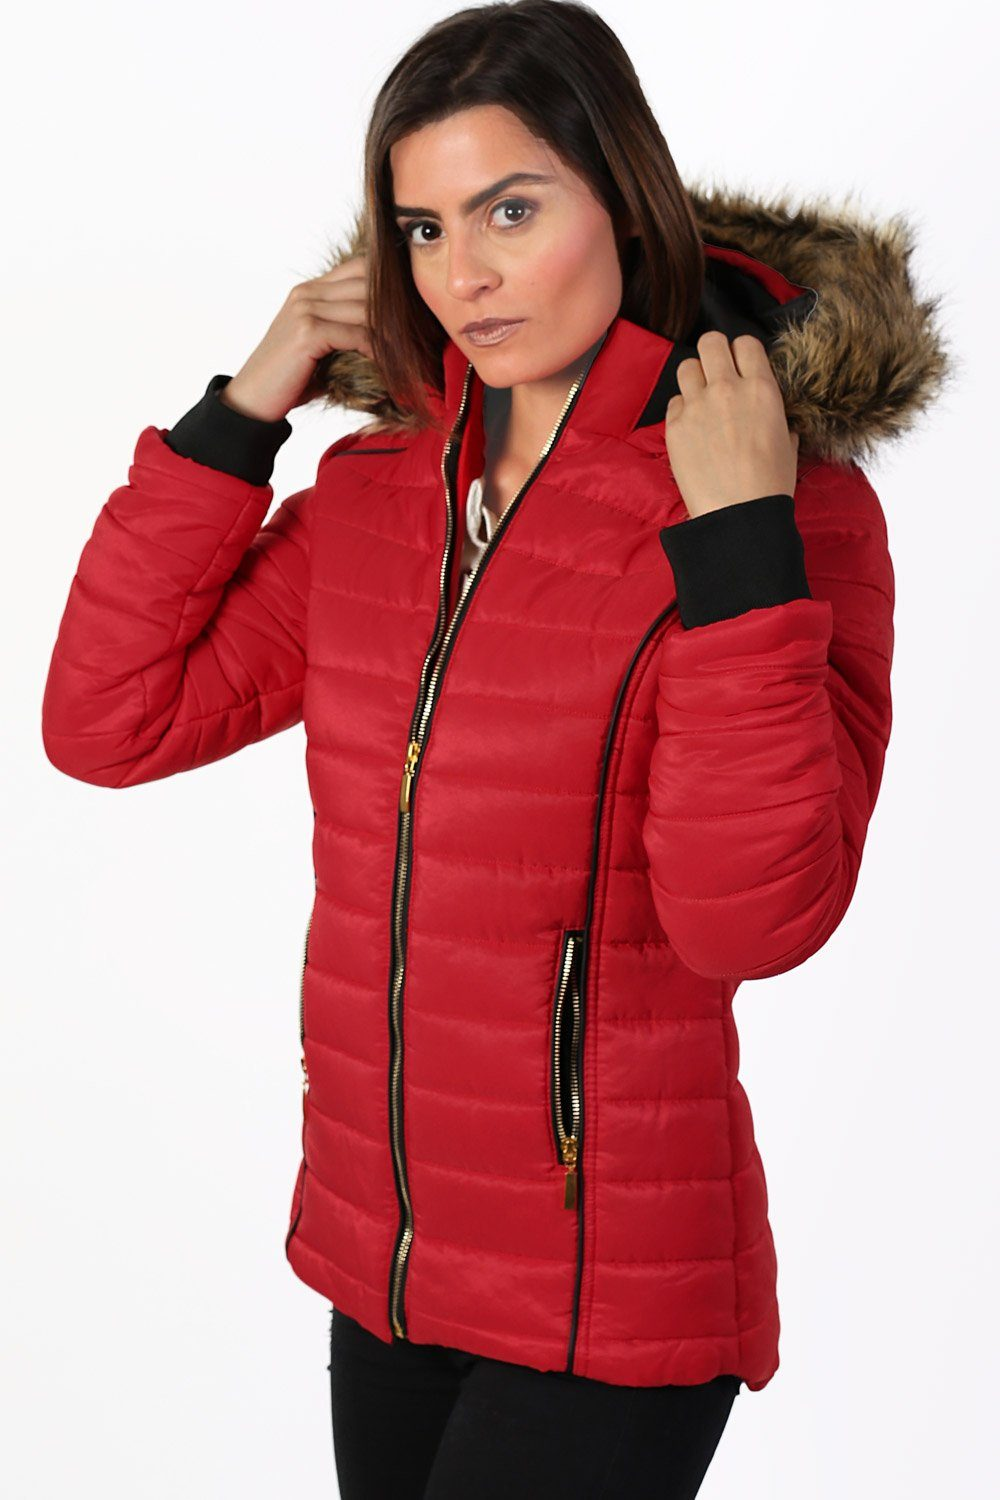 Faux Fur Trim Hooded Puffa Jacket in Red 1